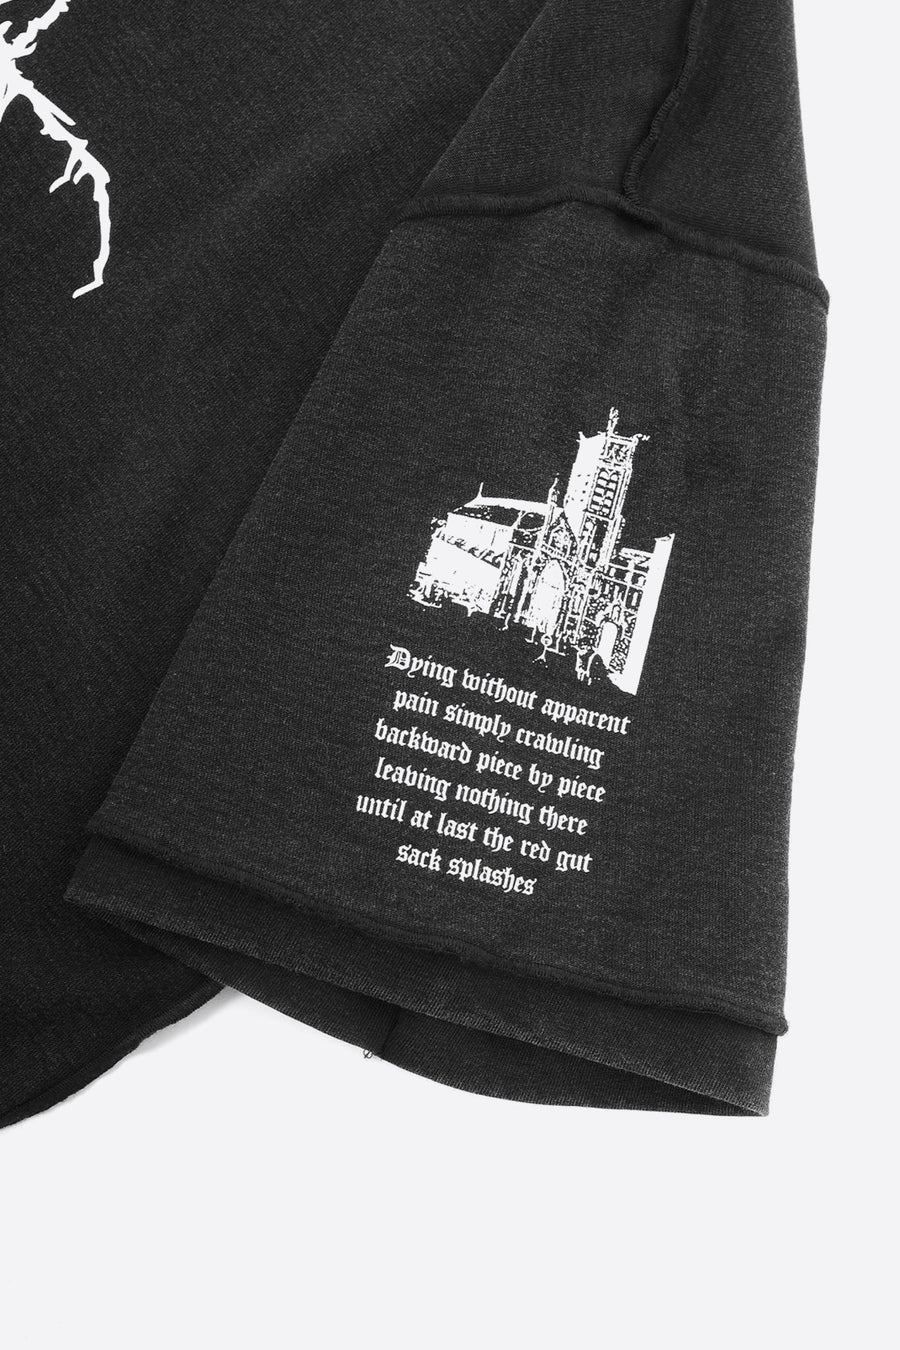 T-shirt Cult Faded Noir - WASTED PARIS